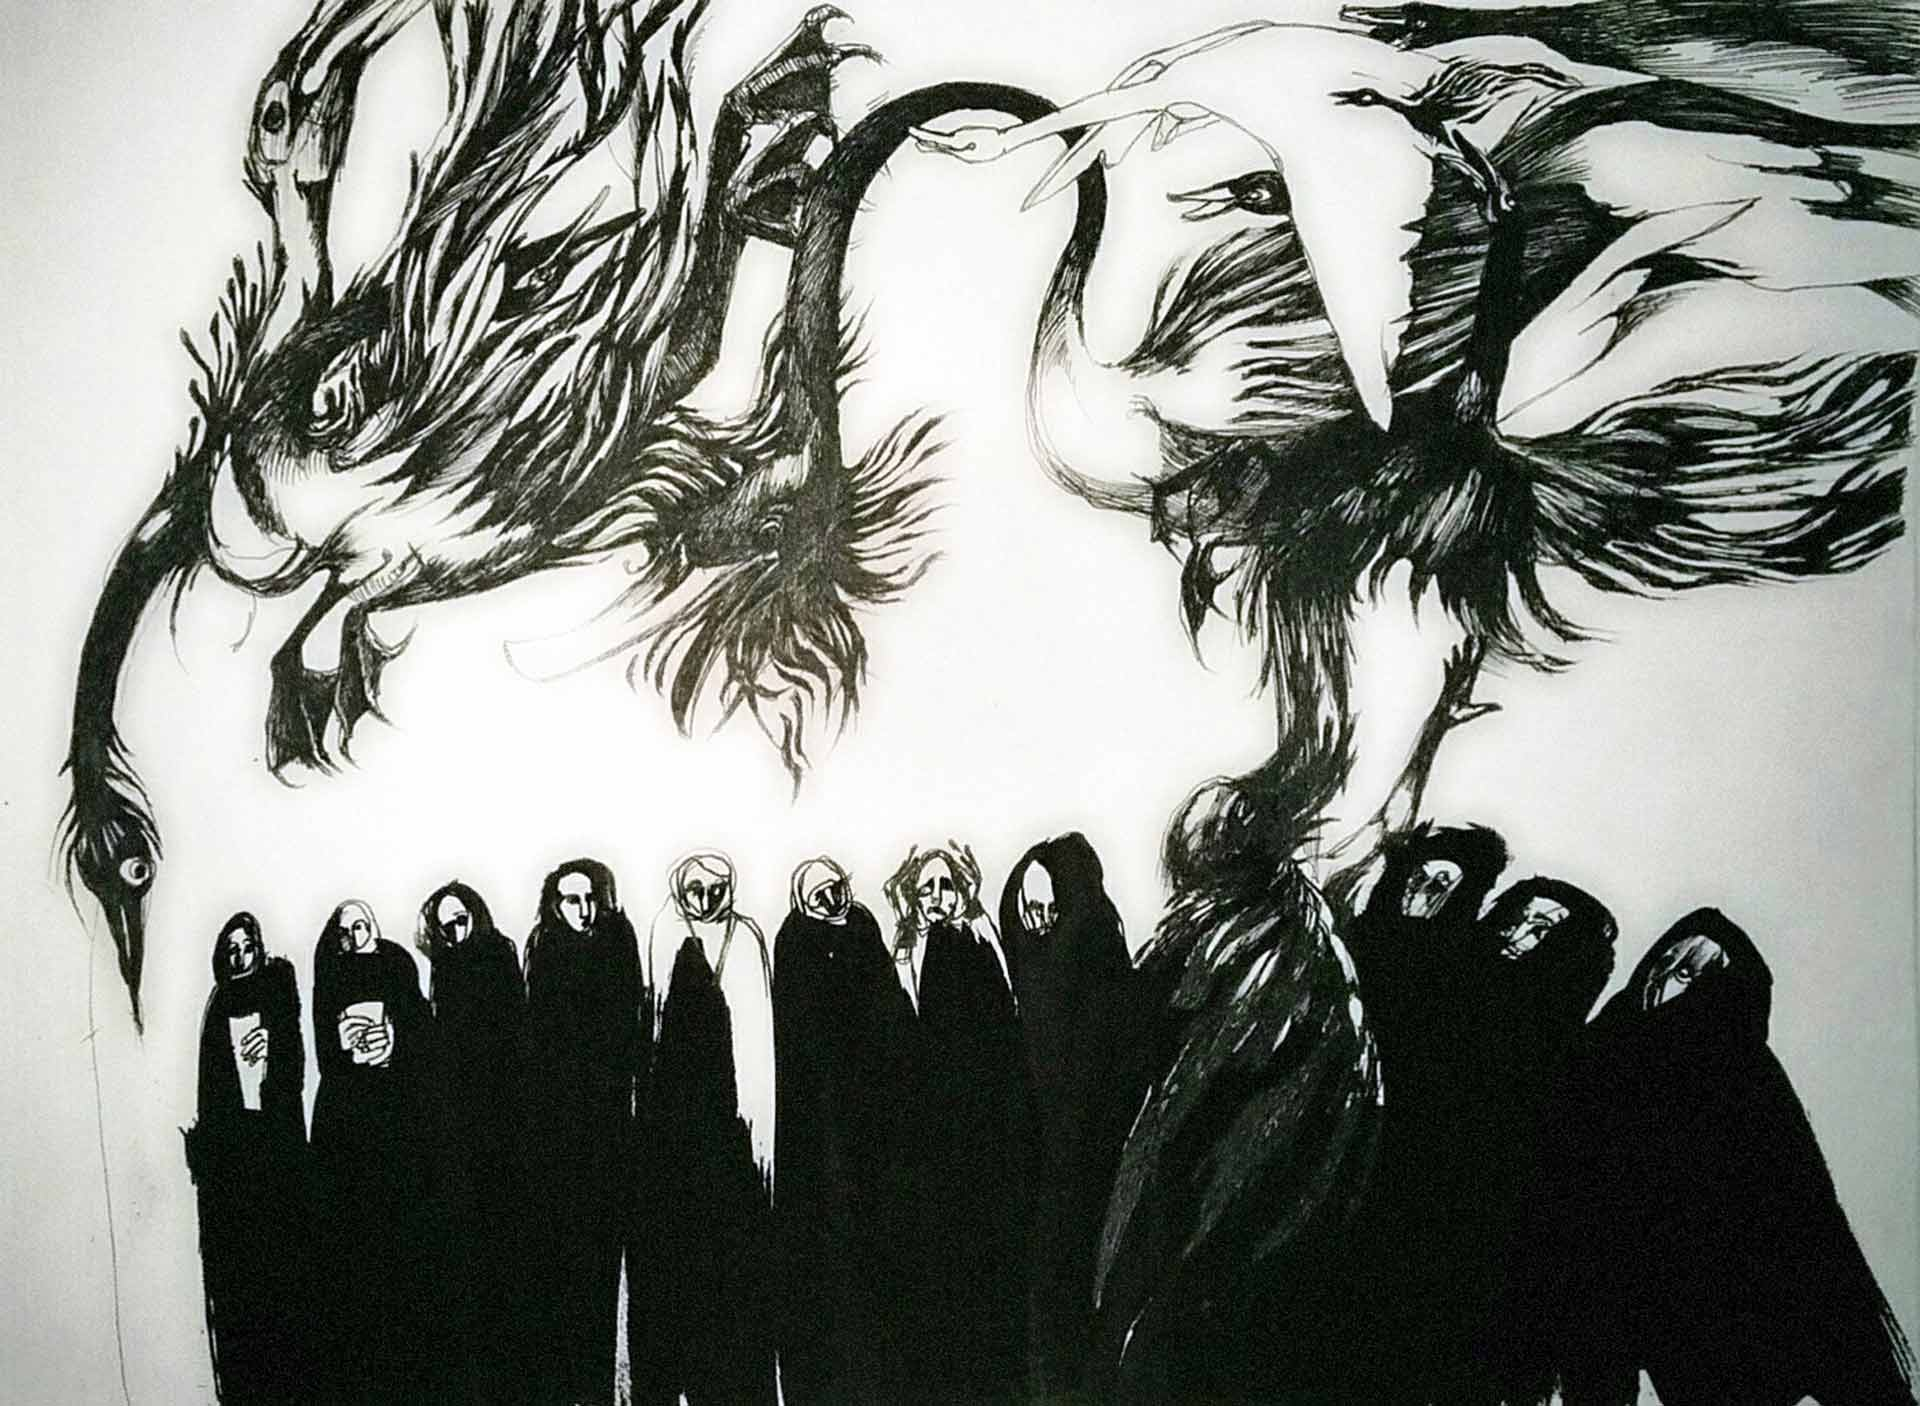 Drawing by Sarah Valeri: Swanstorm